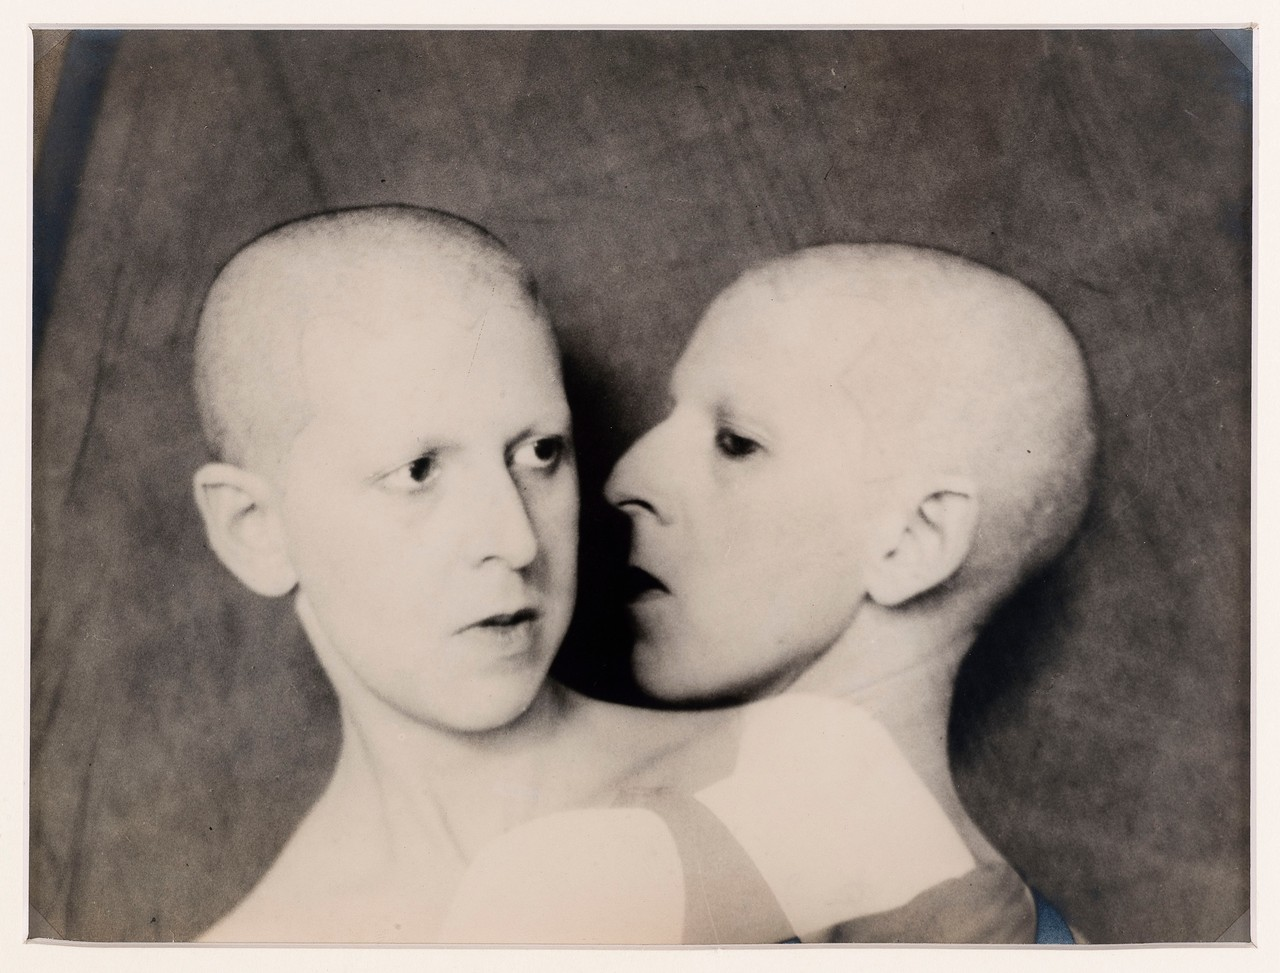 Claude Cahun - Que Me Veux-Tu? (What Do You Want From Me?), 1928